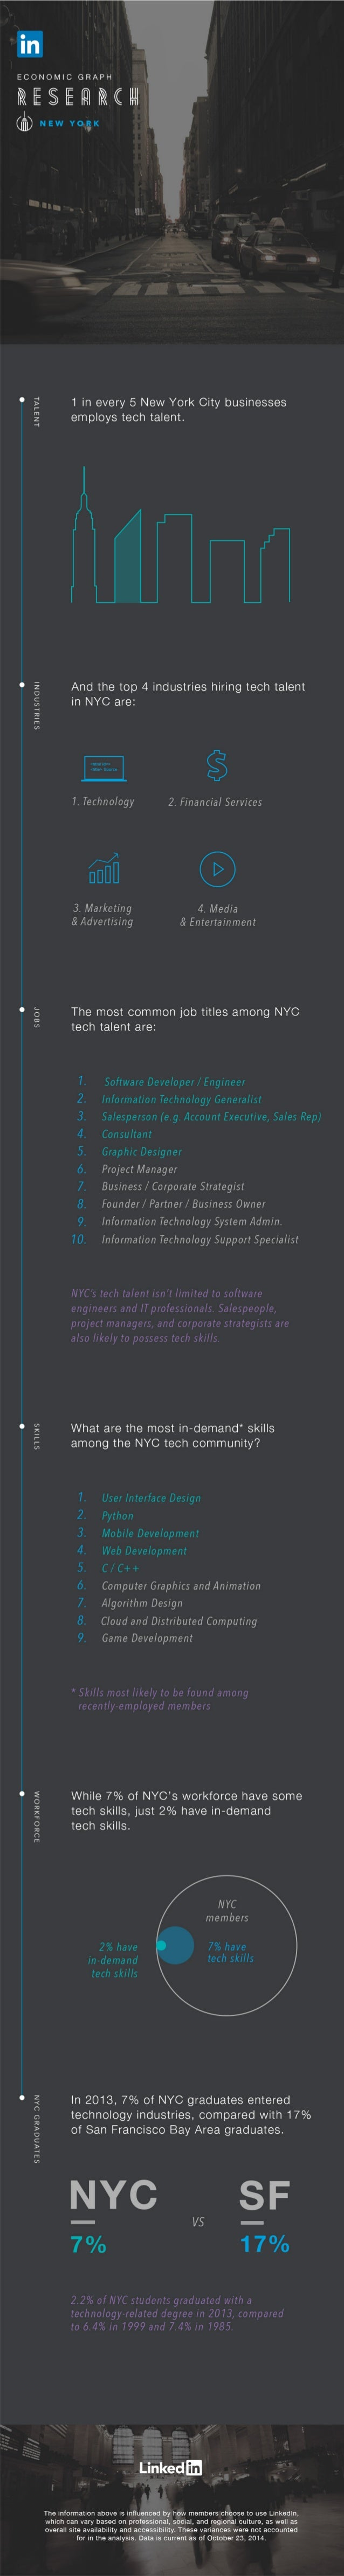 ECONOMIC GRAPH  0ESE111MII11  ([71) NEW Yo,1;1<     1 1  ,   1 in every 5 New York City businesses employs tech talent.   ...